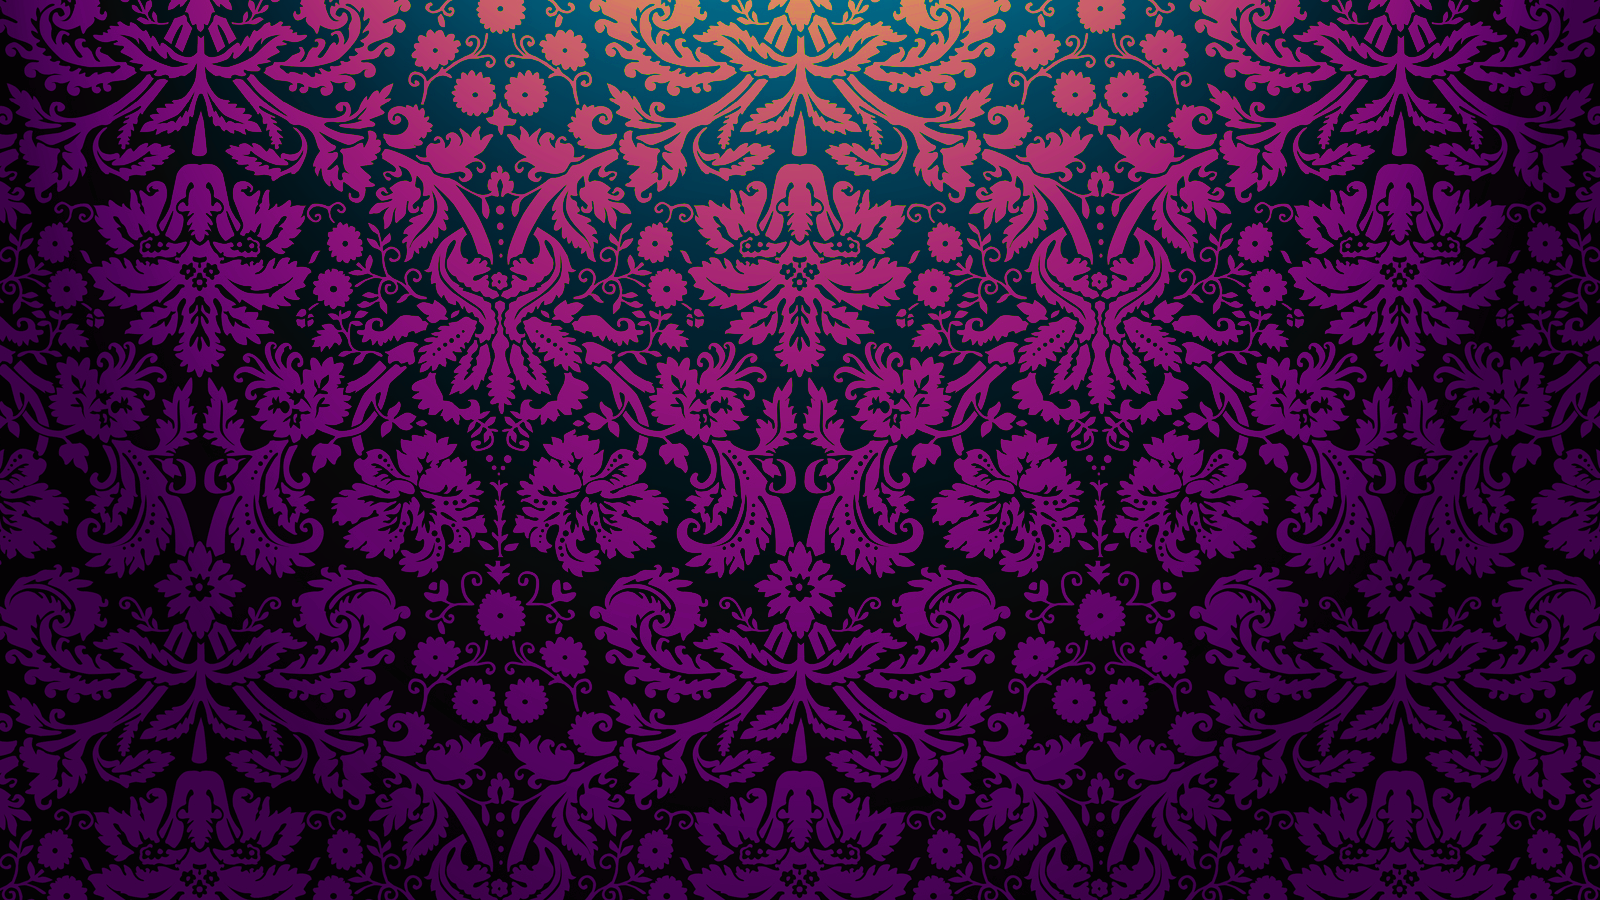 Free Download Pink Gold Pink Gold Damask Wallpaper 1600x1100 For